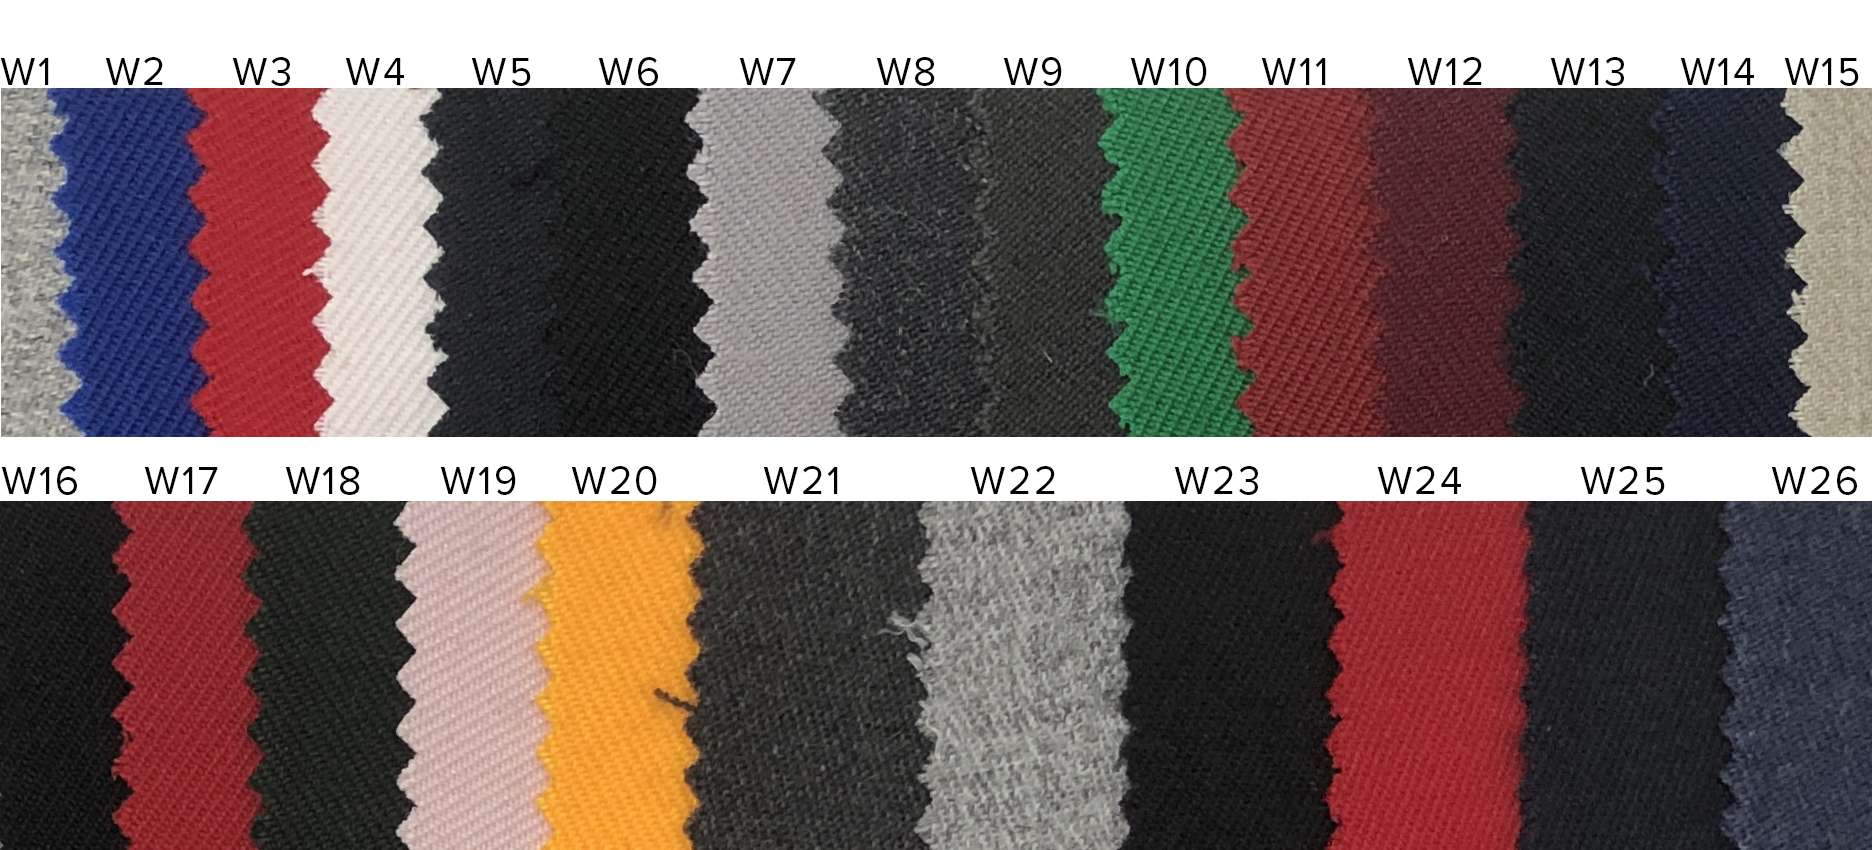 wool_two rows.jpg